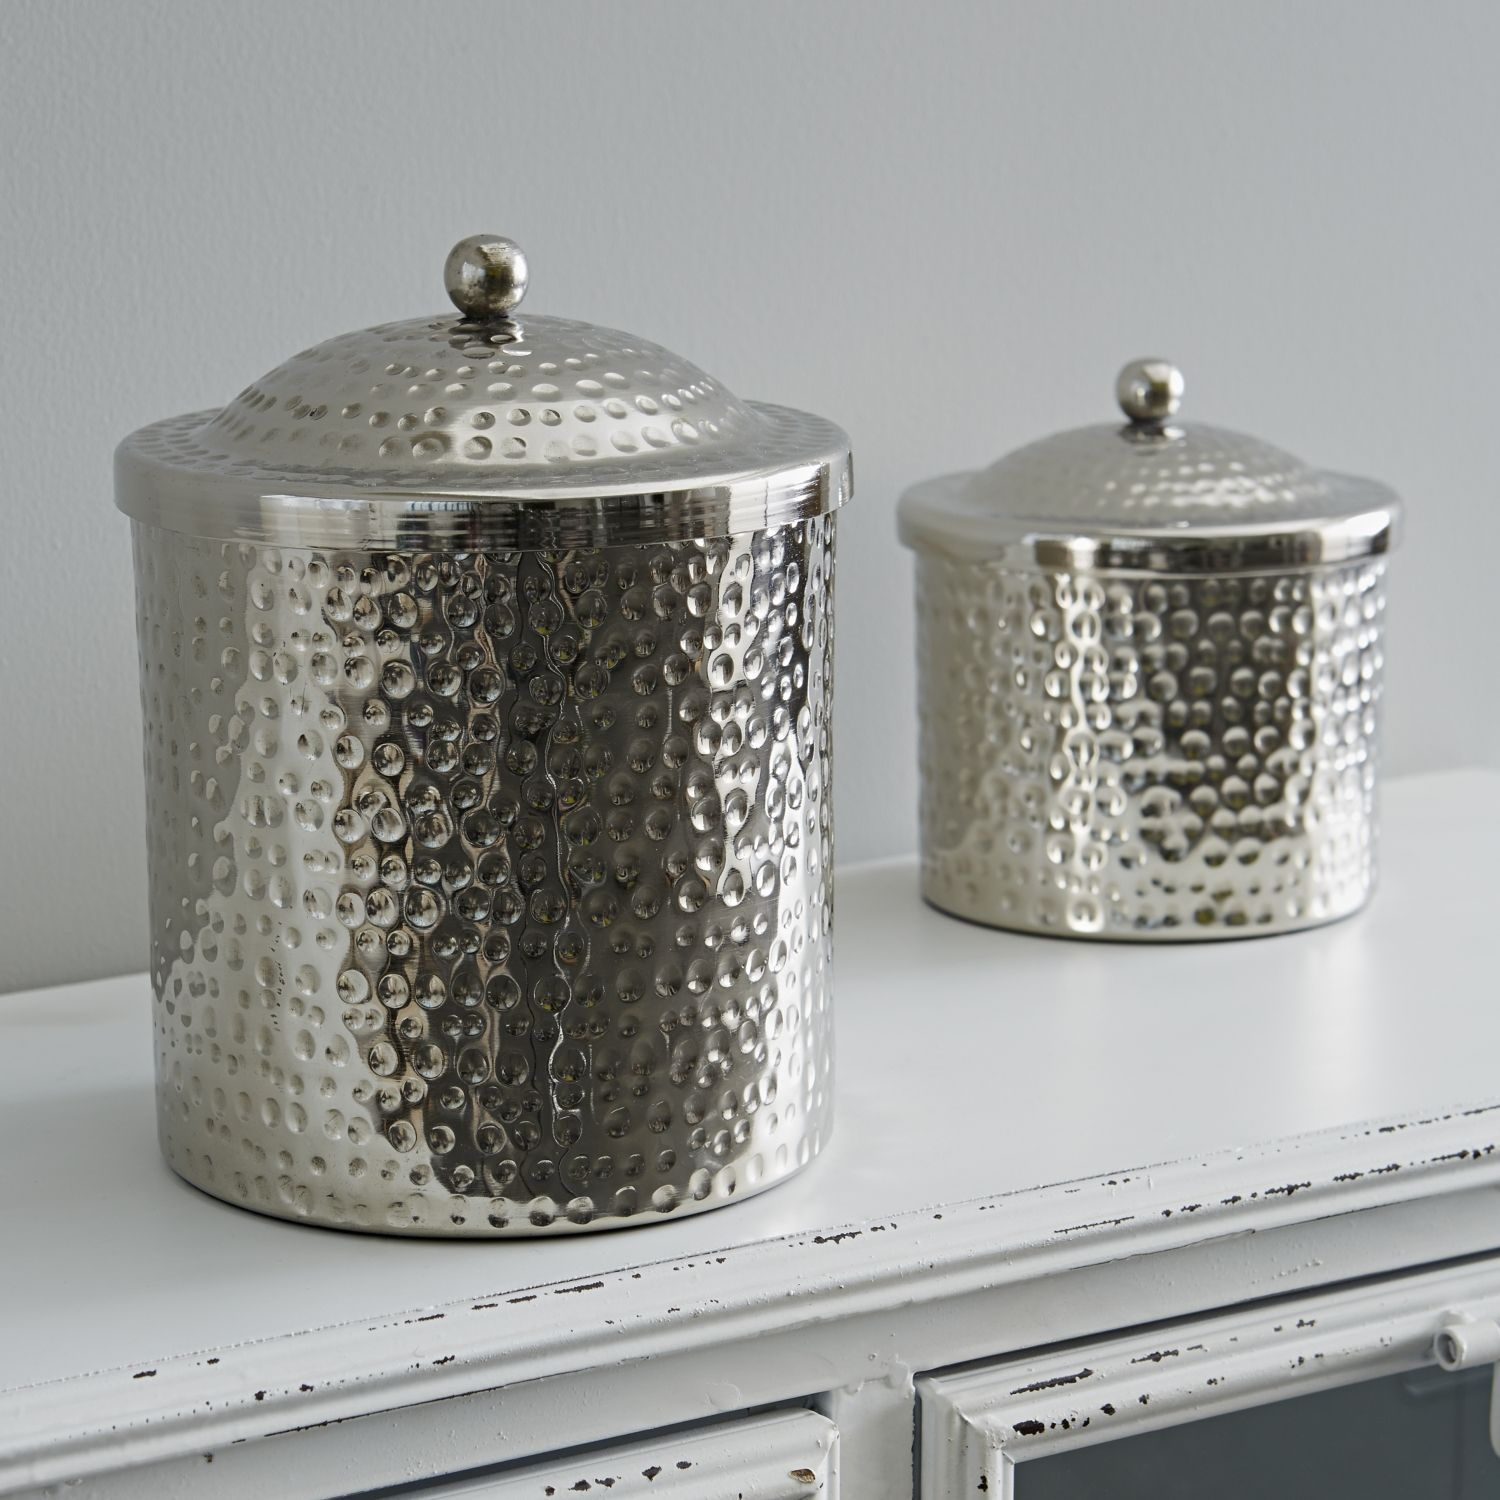 Rigby & Mac Beaten Silver Canisters Small: Smart dimpled metal canisters to hold all manner of things. The small size is perfect for baby buds while the large could be a pretty table top bin for the bathroom. These would look equally good in the living room or bedroom. Velvet bottom so will not scratch or discolour your surfaces.- metal